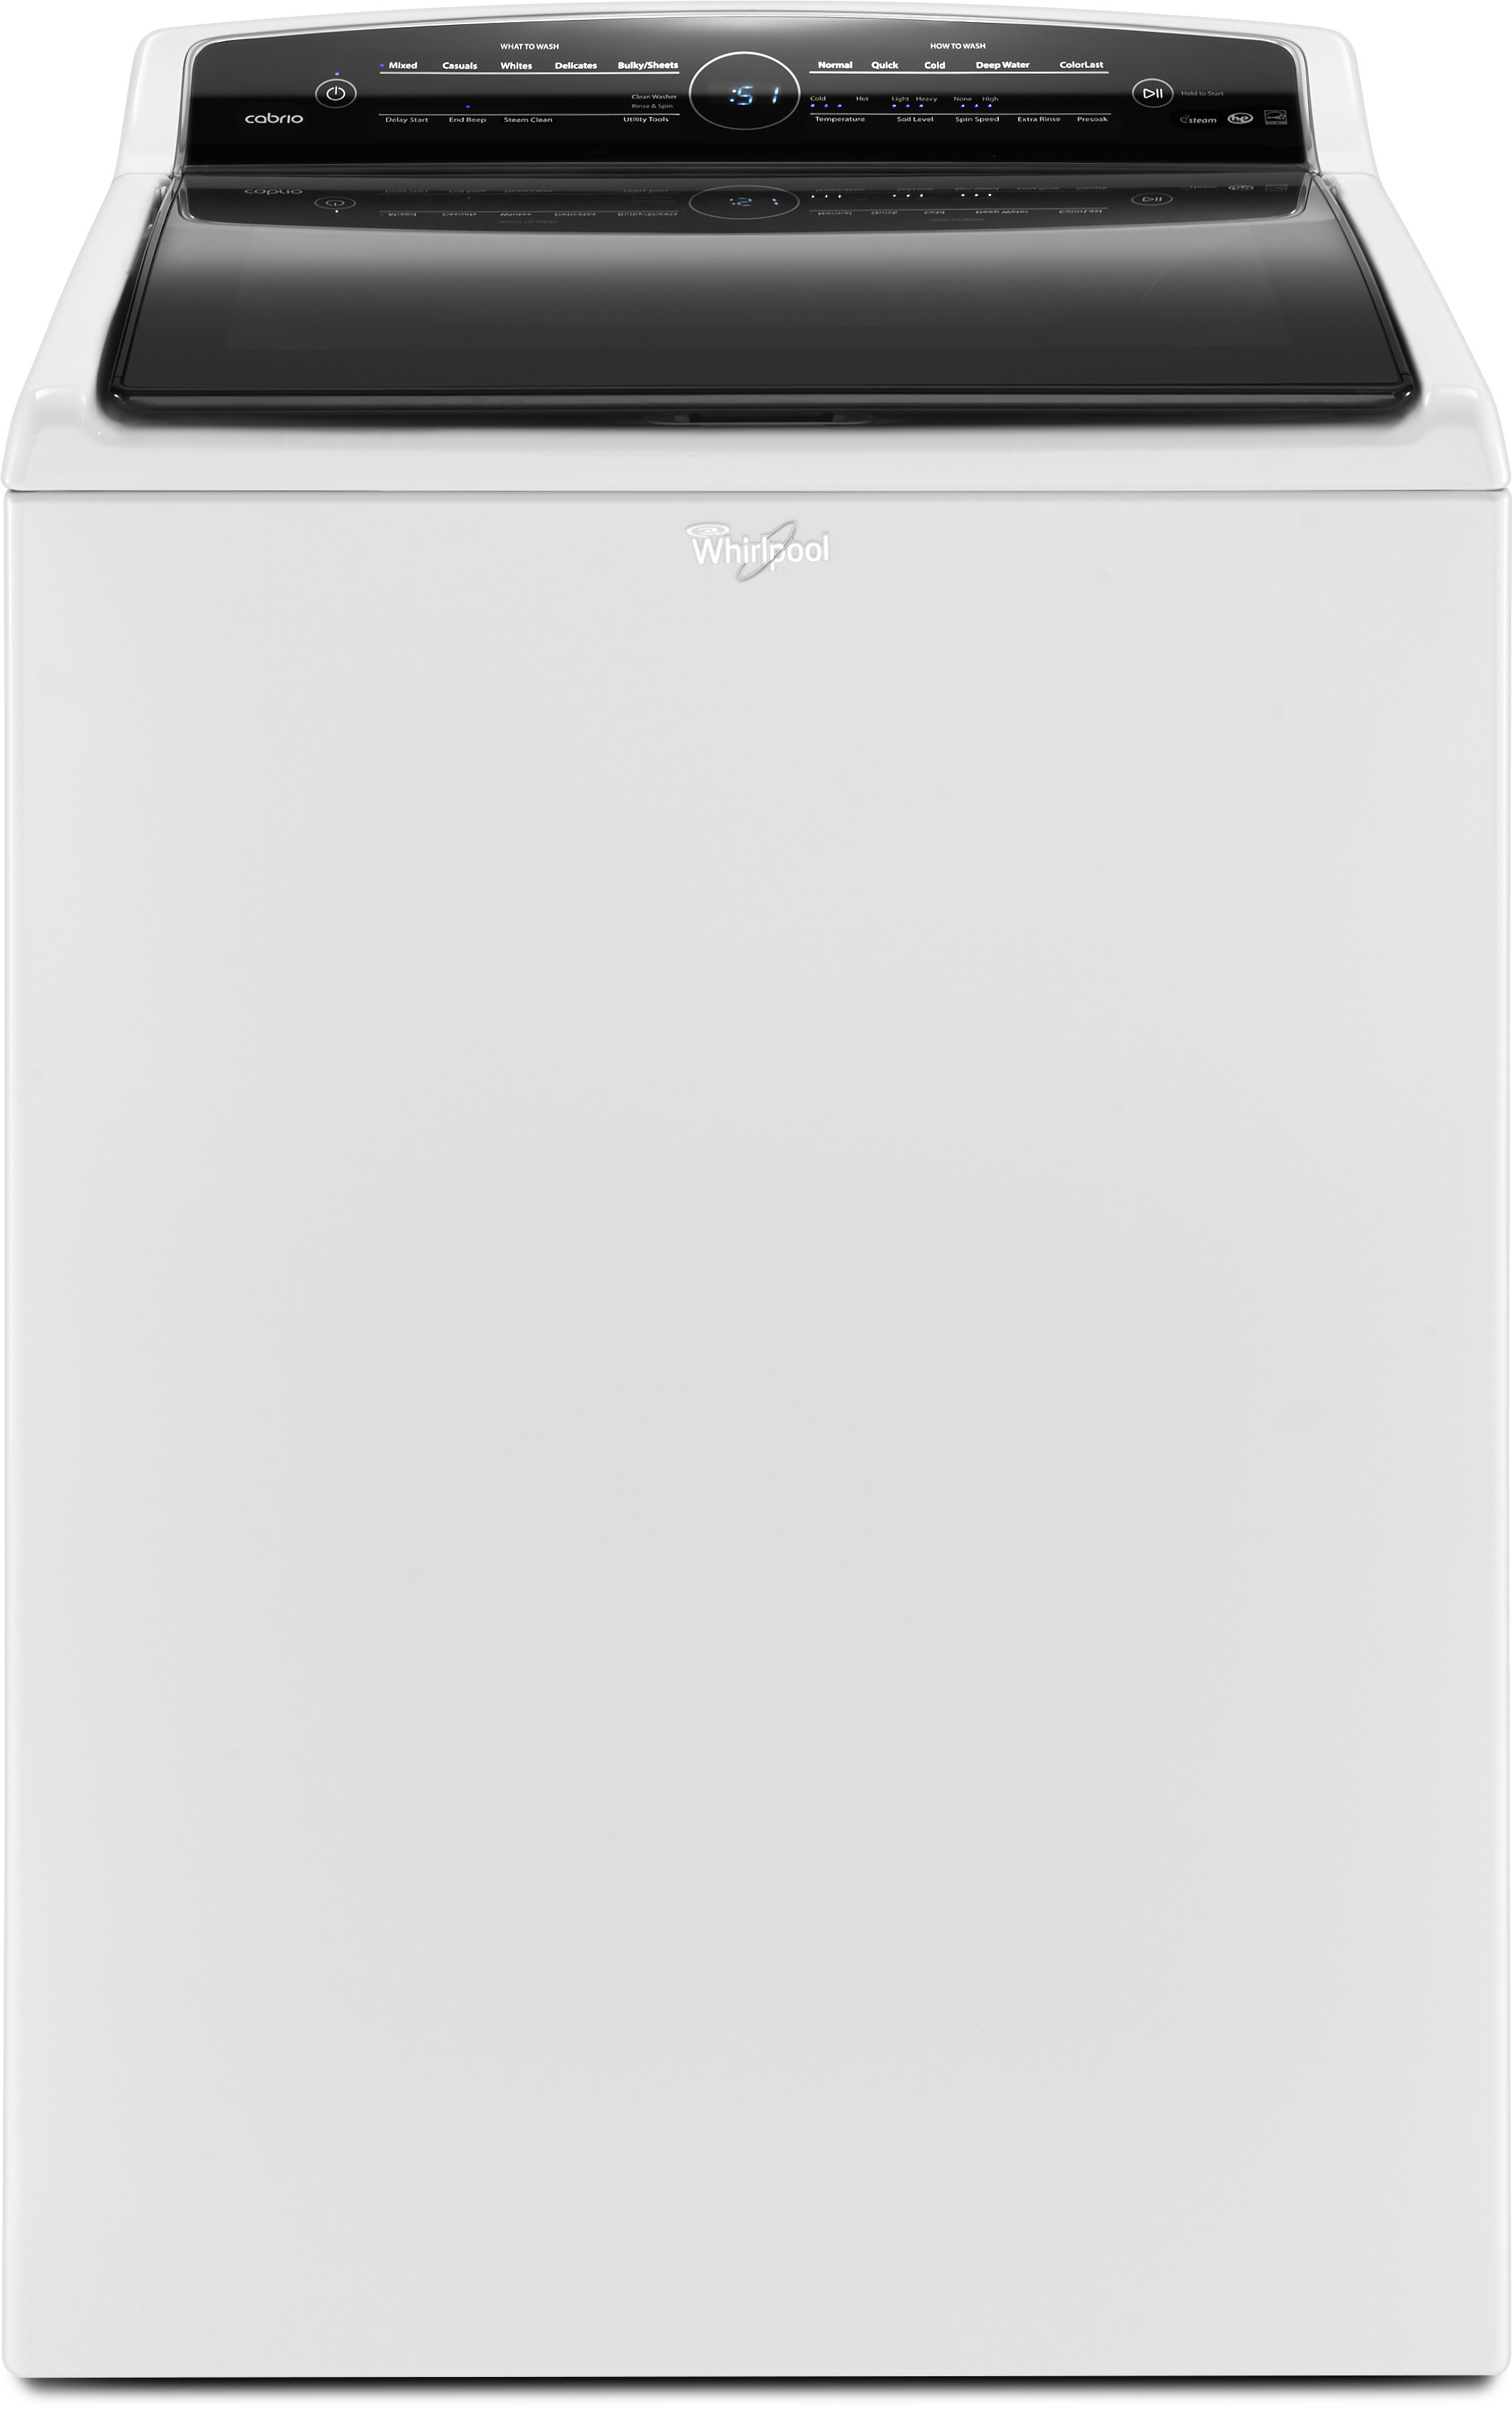 Whirlpool Wtw7300dw 28 Inch Top Load Washer With Steam Colorlast